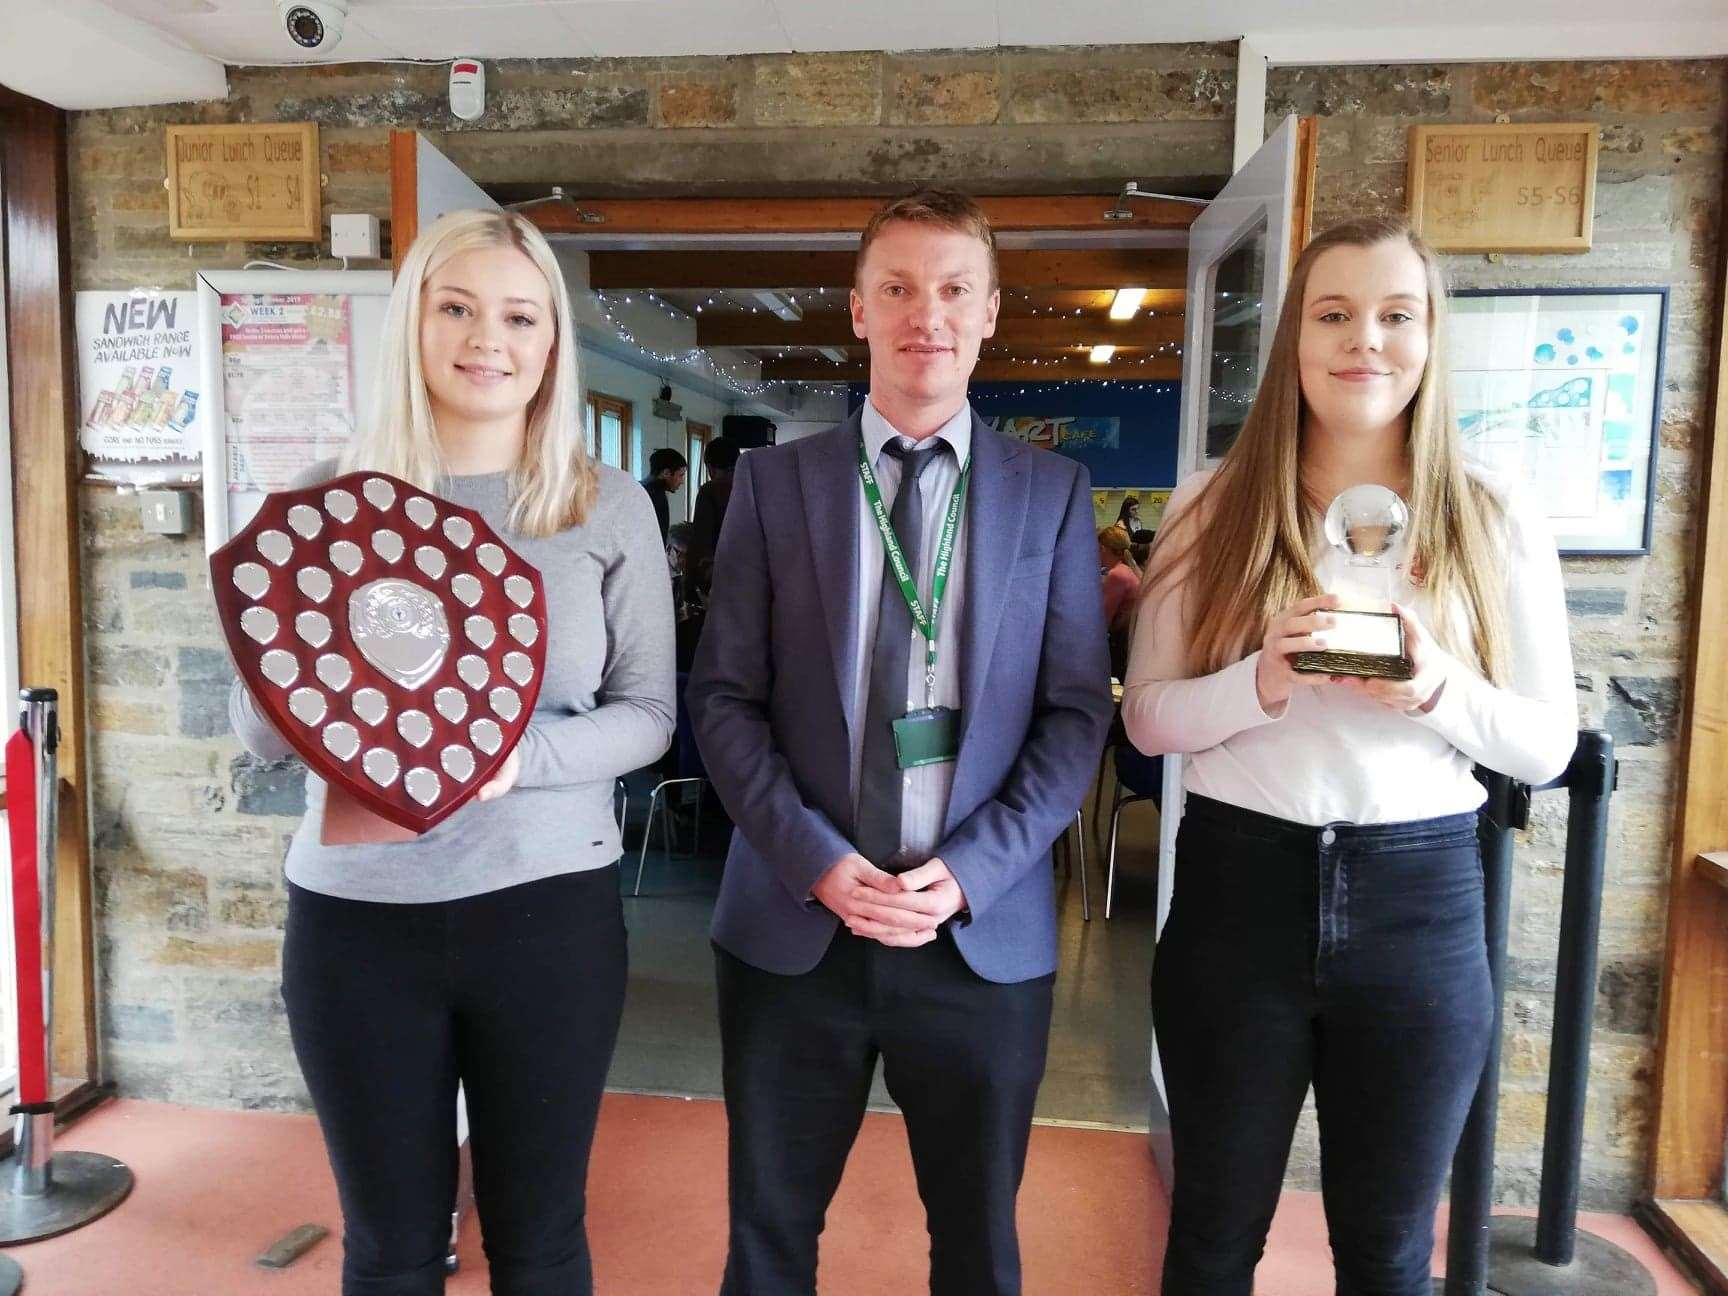 Anna (left) and Alix are pictured with Andrew Rathie, faculty head of social subjects.